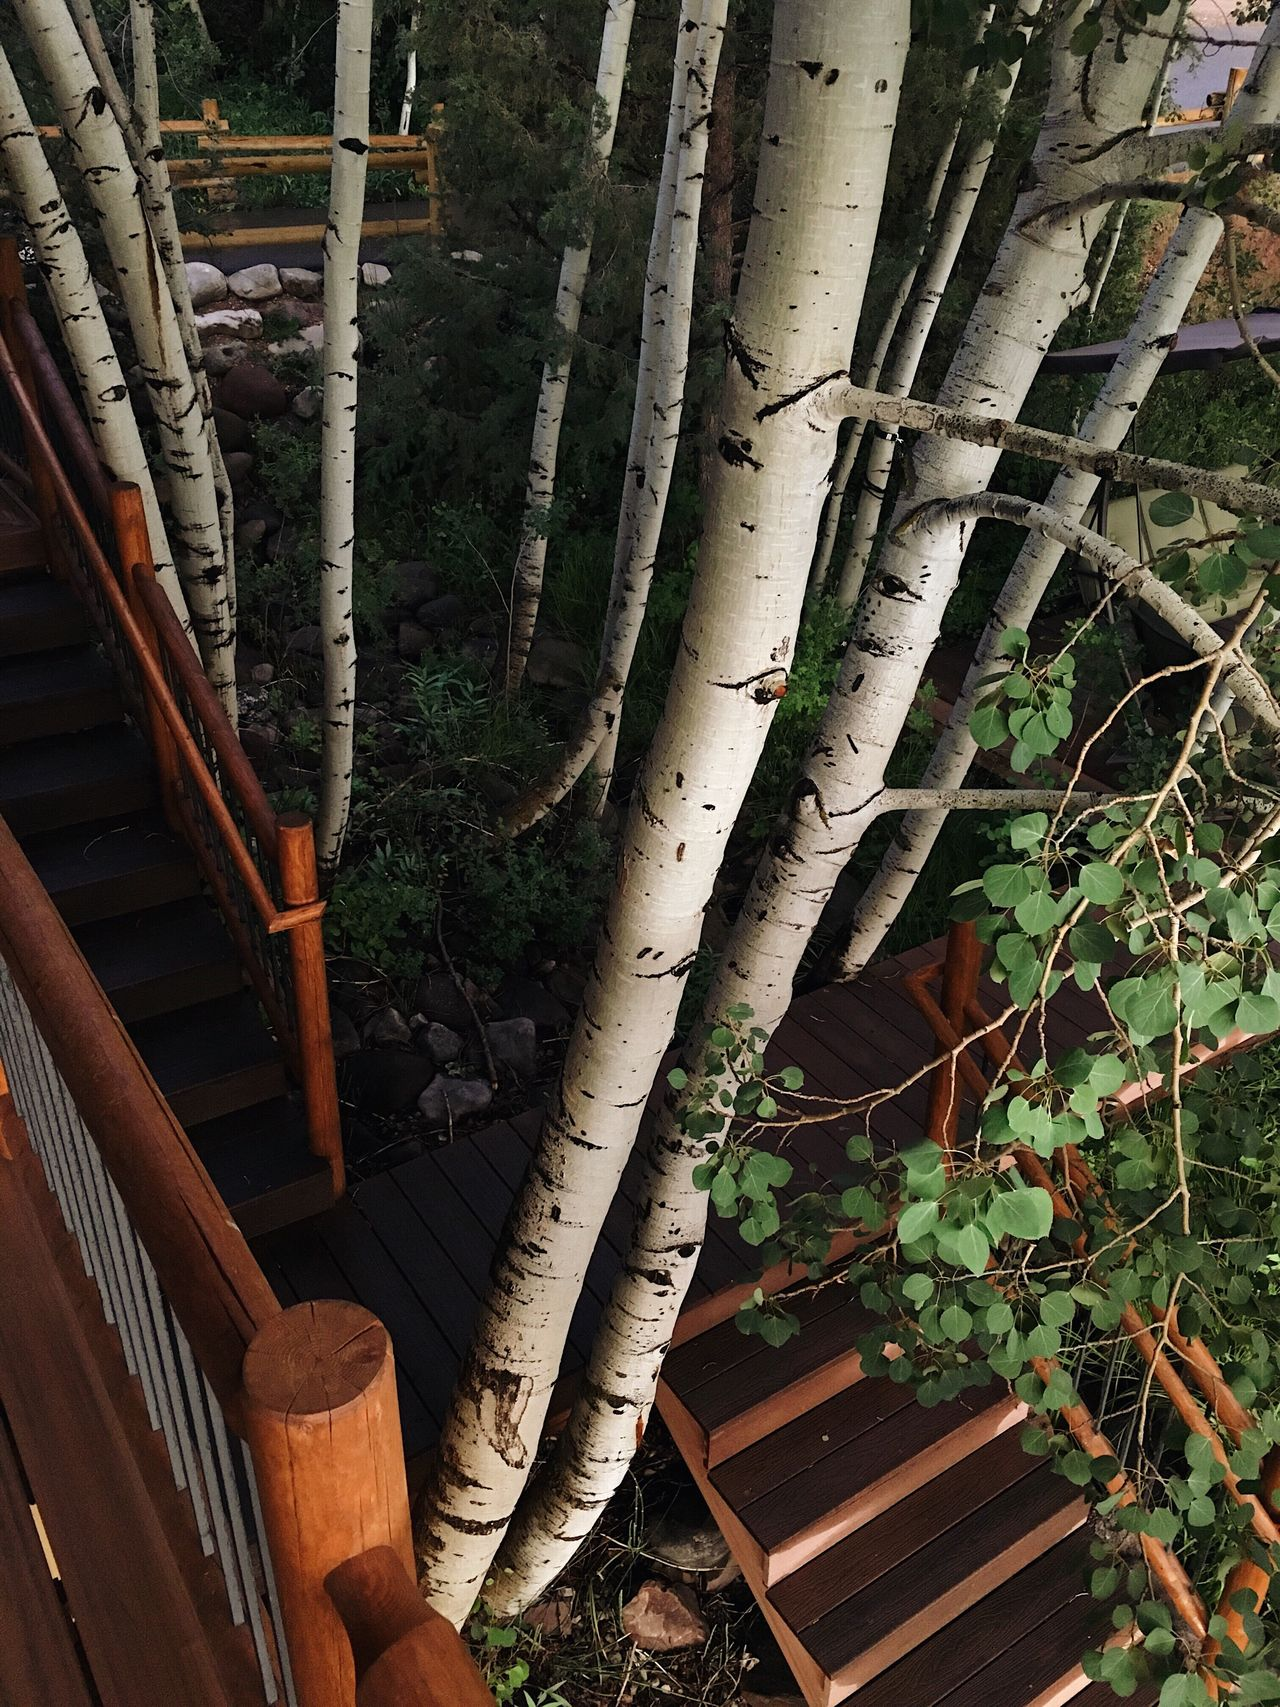 the aspen are my favorite tree up here. their leaves will turn a bright yellow in the fall. Heber City